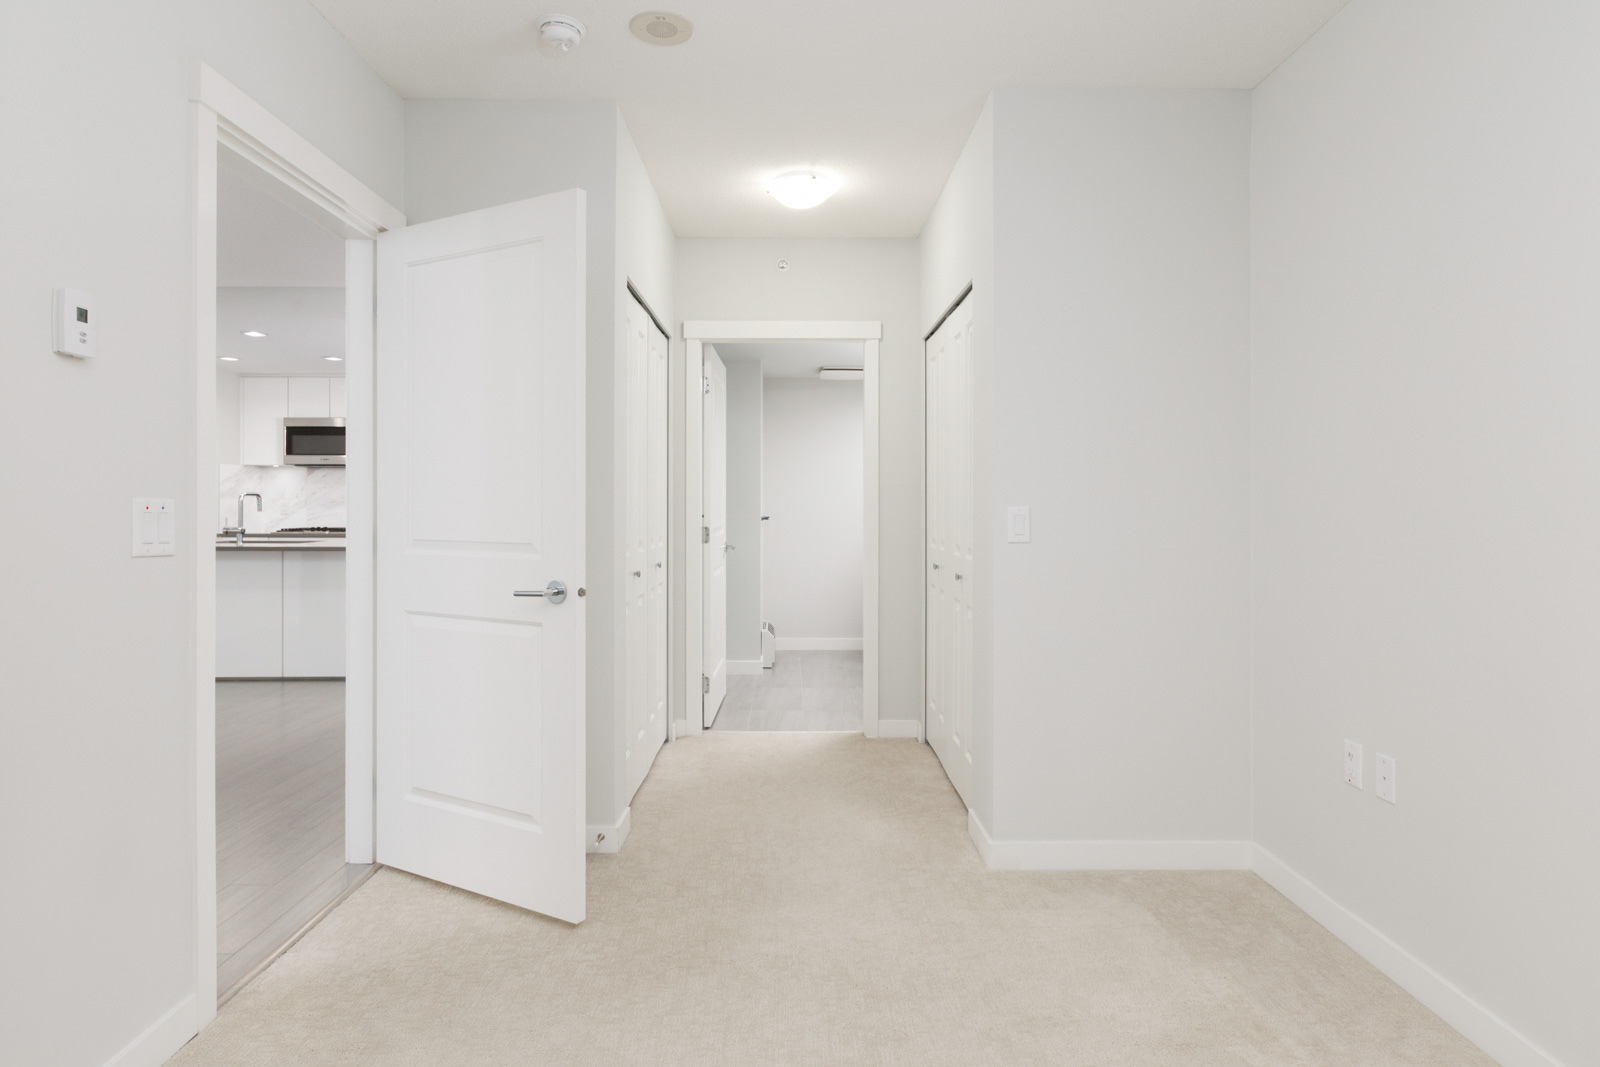 view in long condo hallway with open door into kitchen on left and down hallway in the middle to other rooms with closet doors on both sides of hallway where floors are carpeted and doors and walls are white